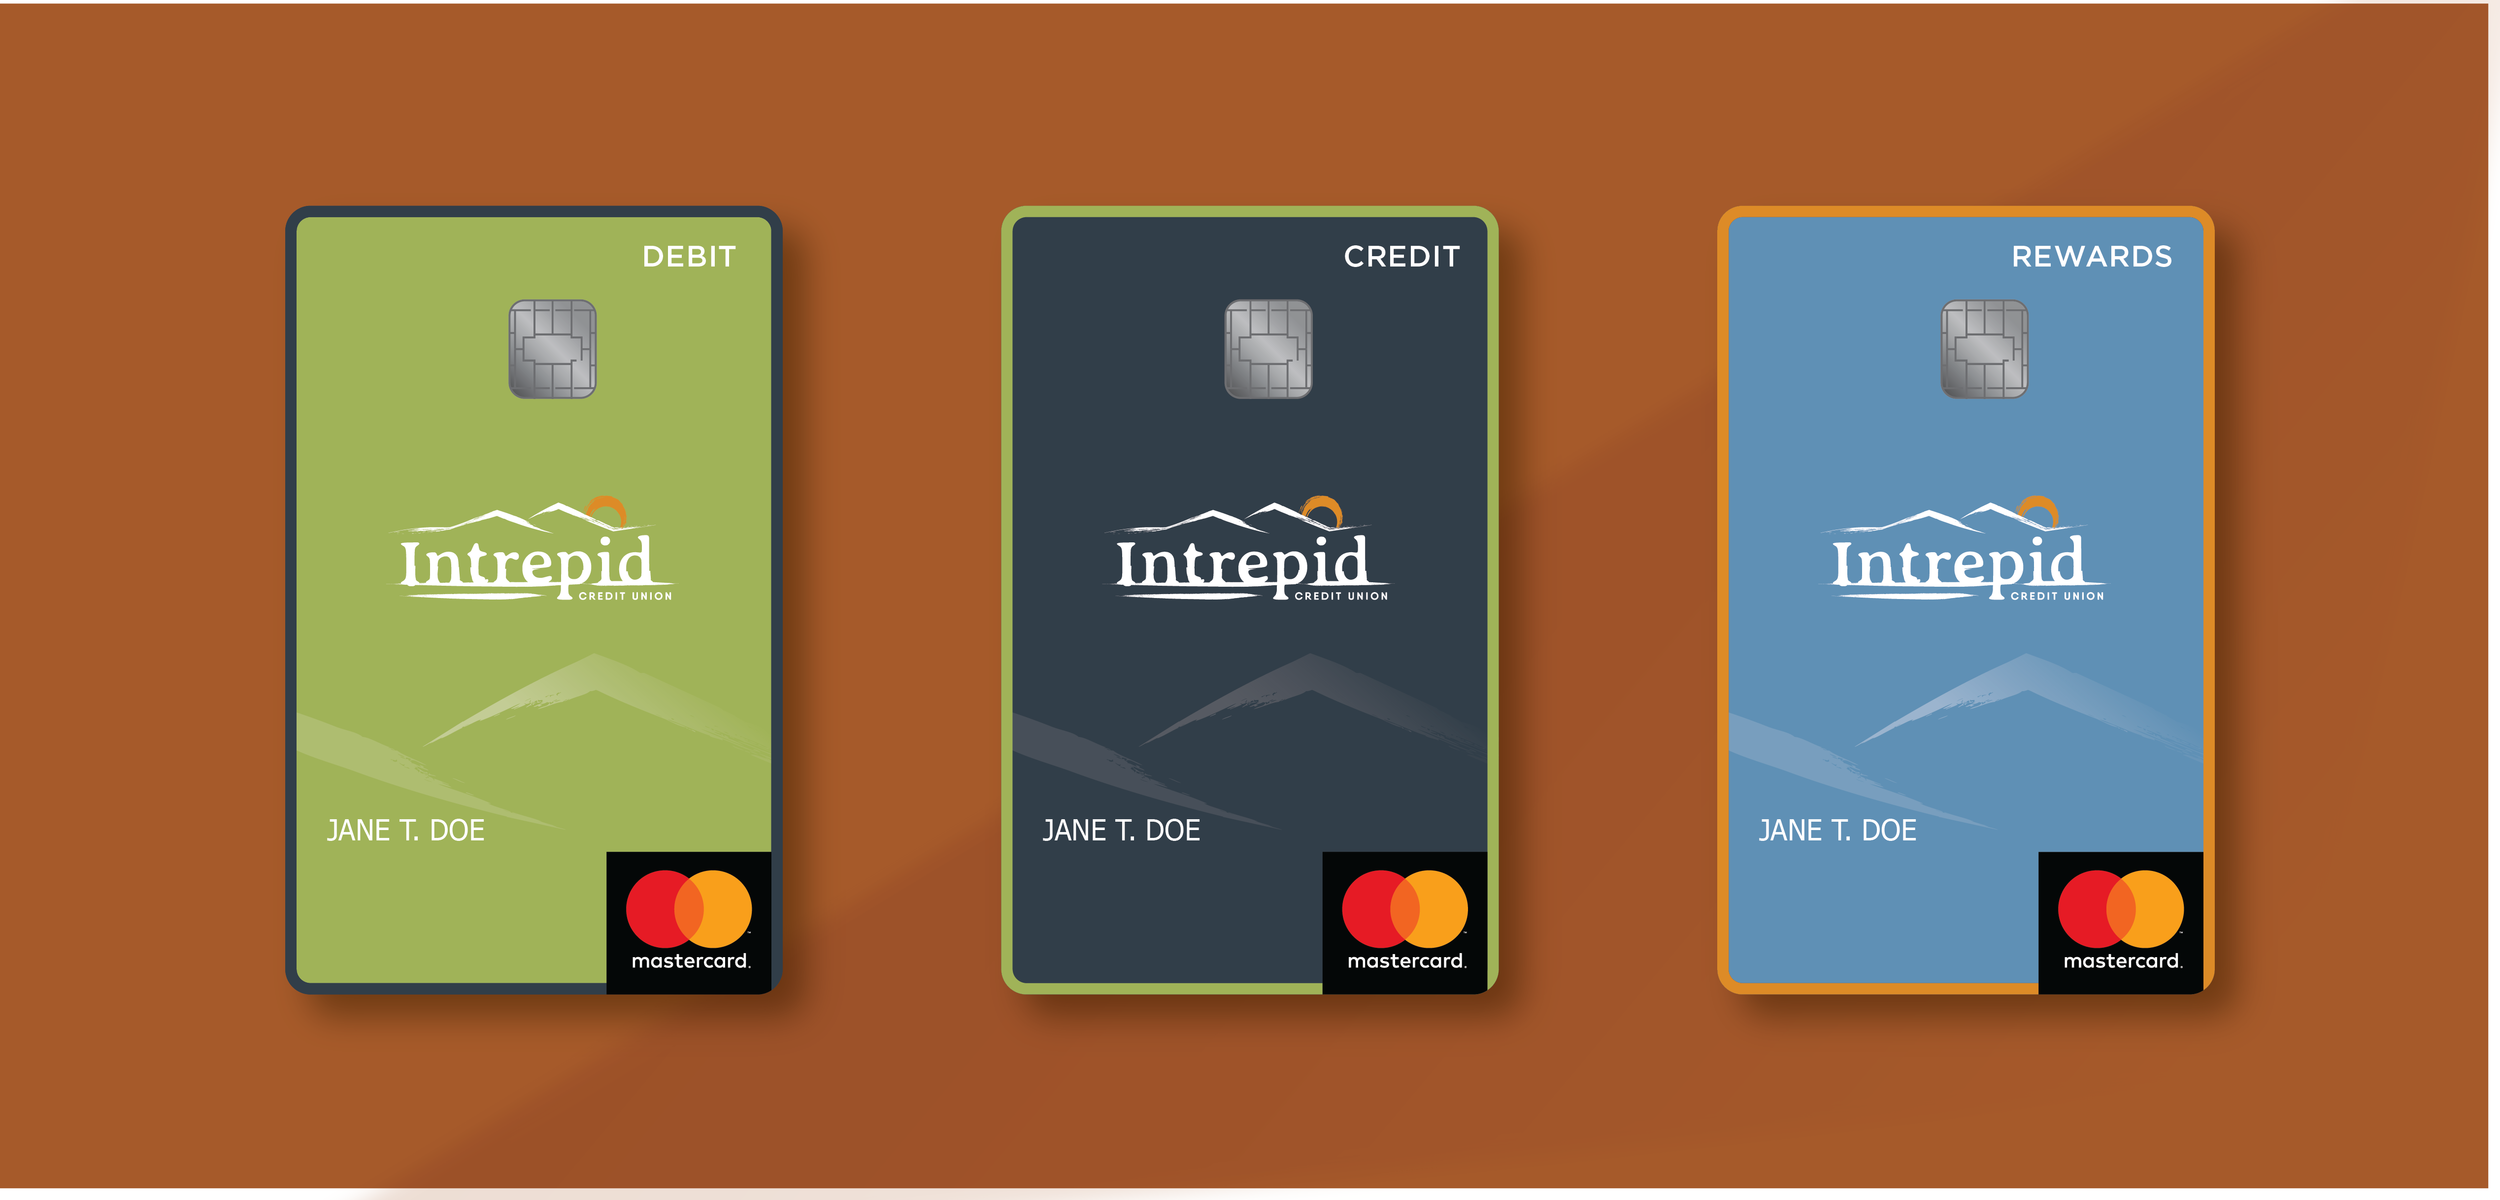 Intrepid_credit cards-04-01.png